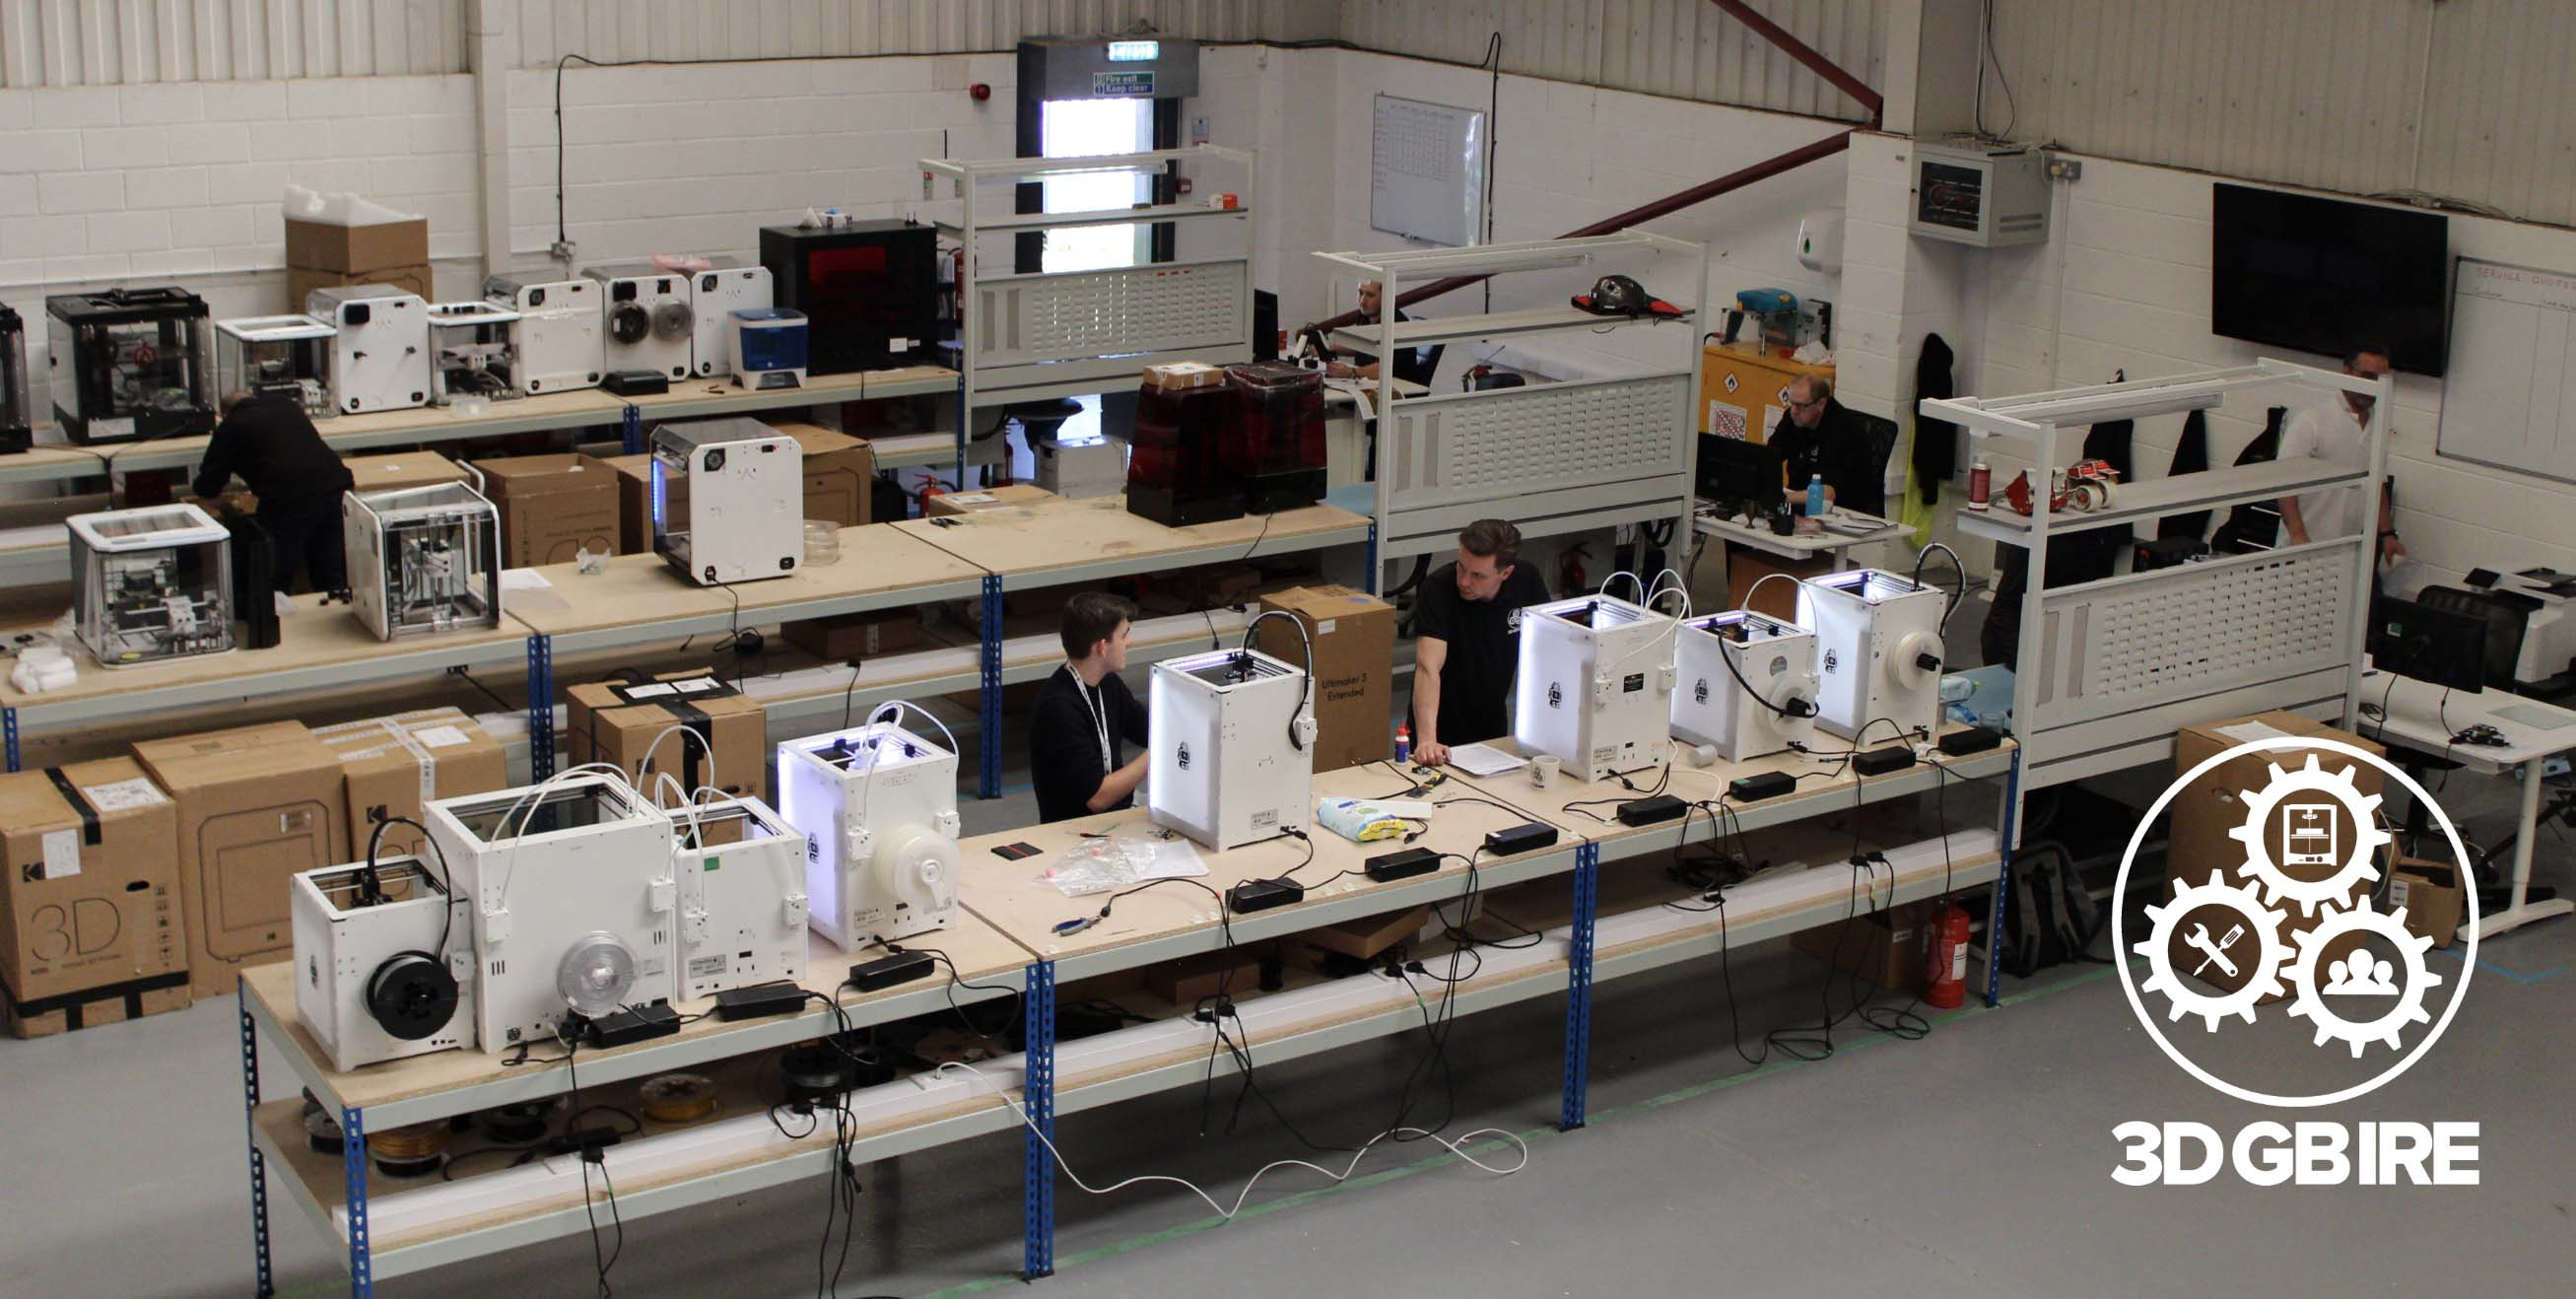 Our team working hard servicing and reparing 3D printers.